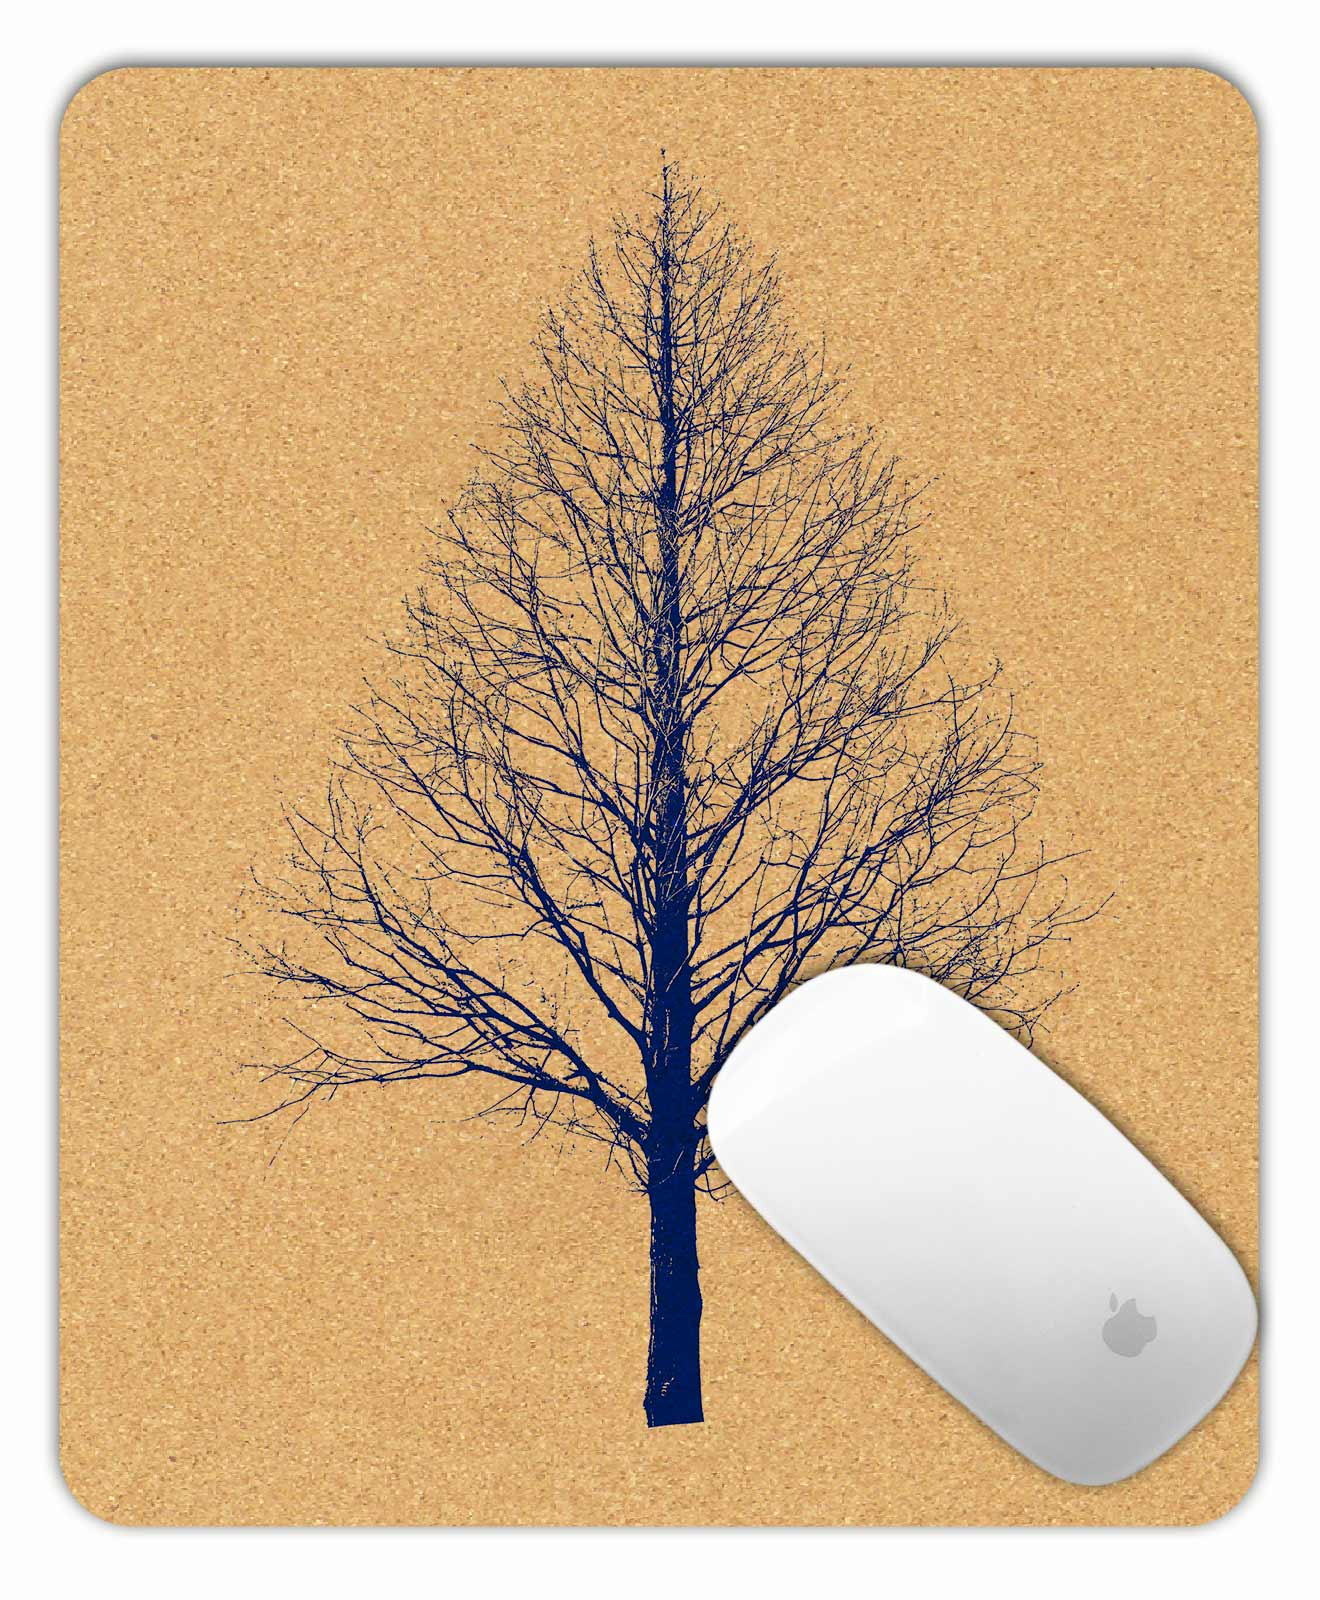 Mouse Pad Pyramid Tree